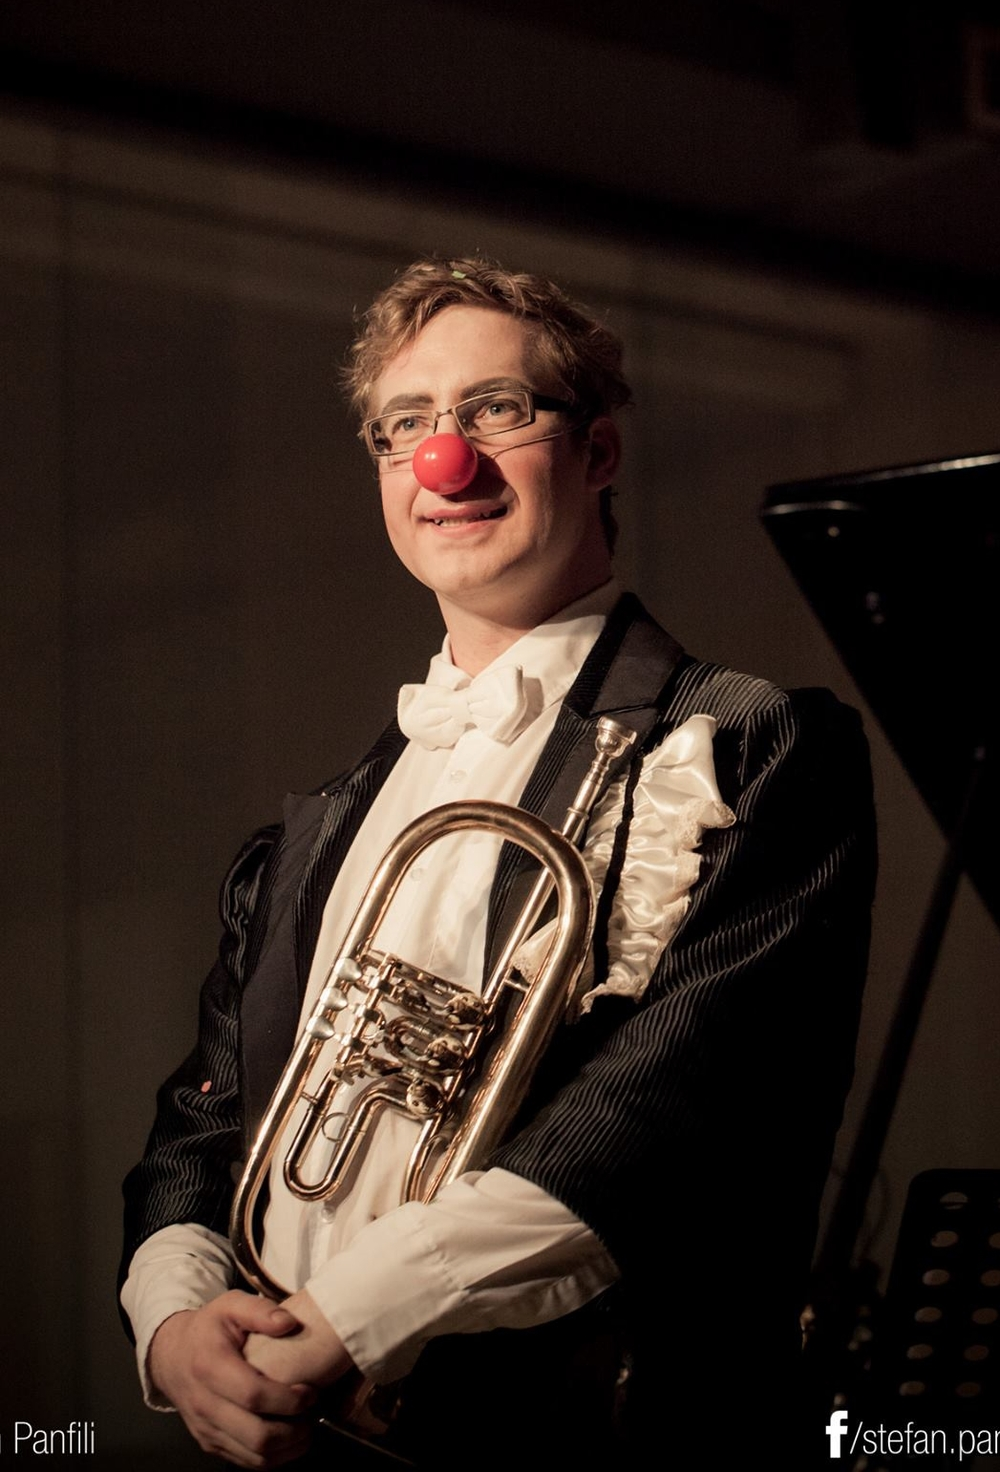 Thomas Toppler, Clown